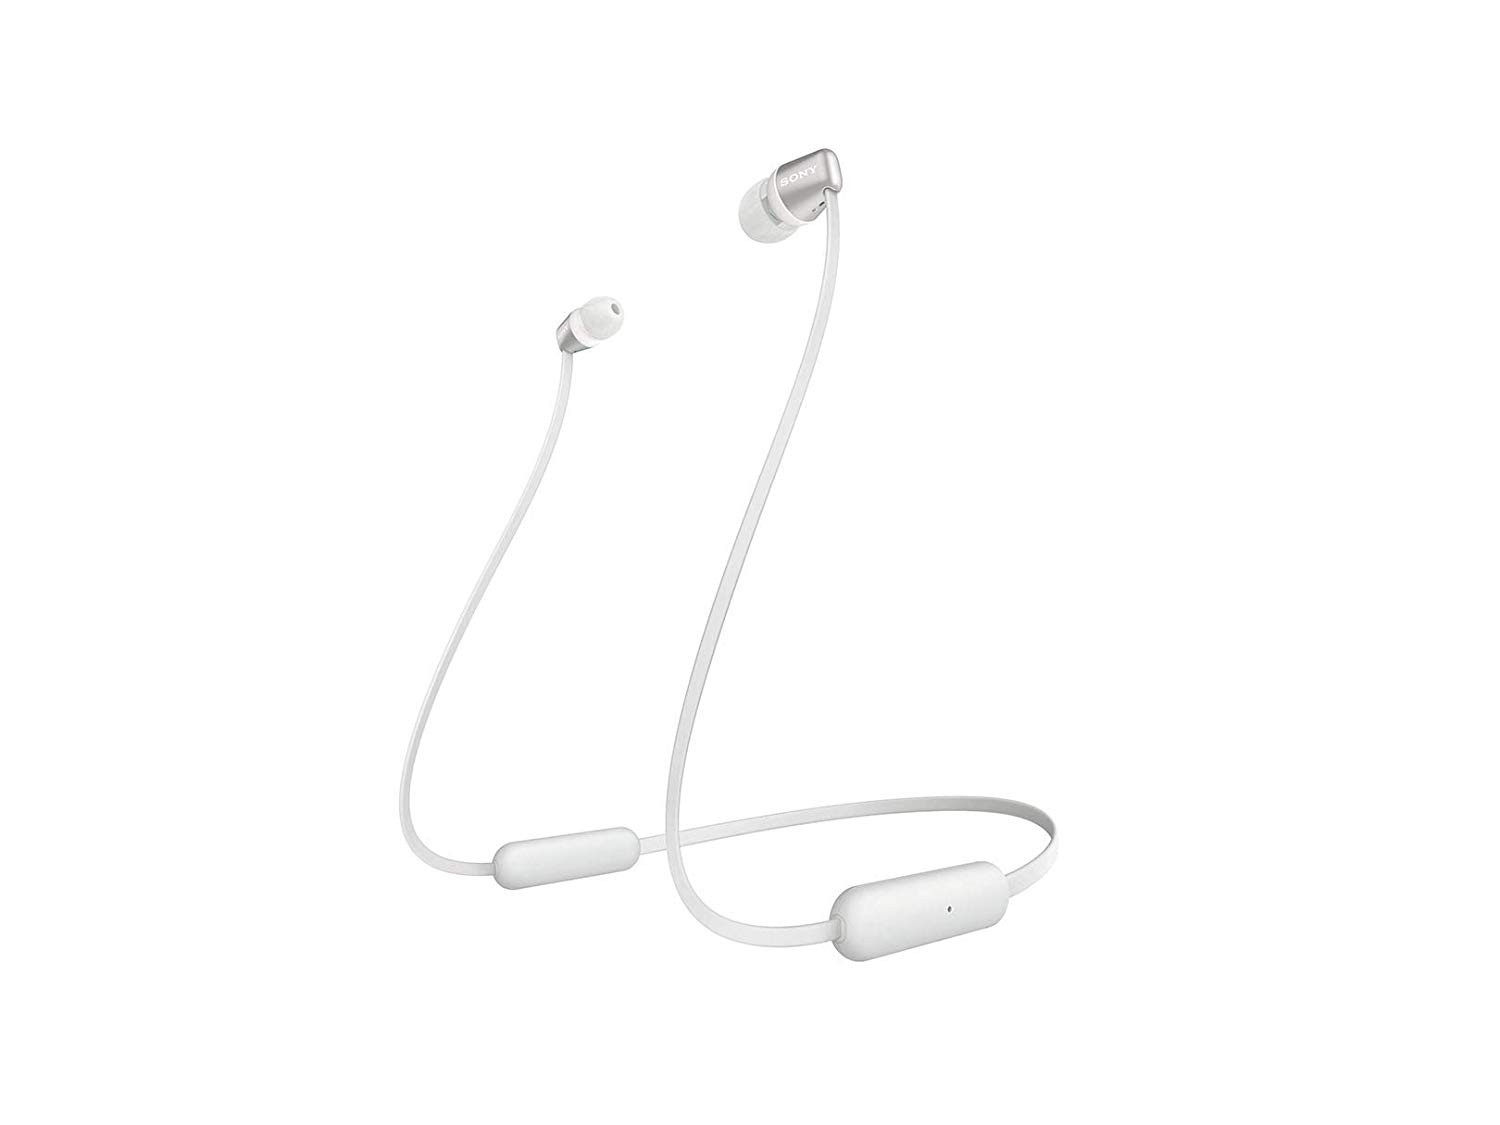 Sony WI-C310 Wireless In-Ear Earphones Magnetic earbuds Neck-Band